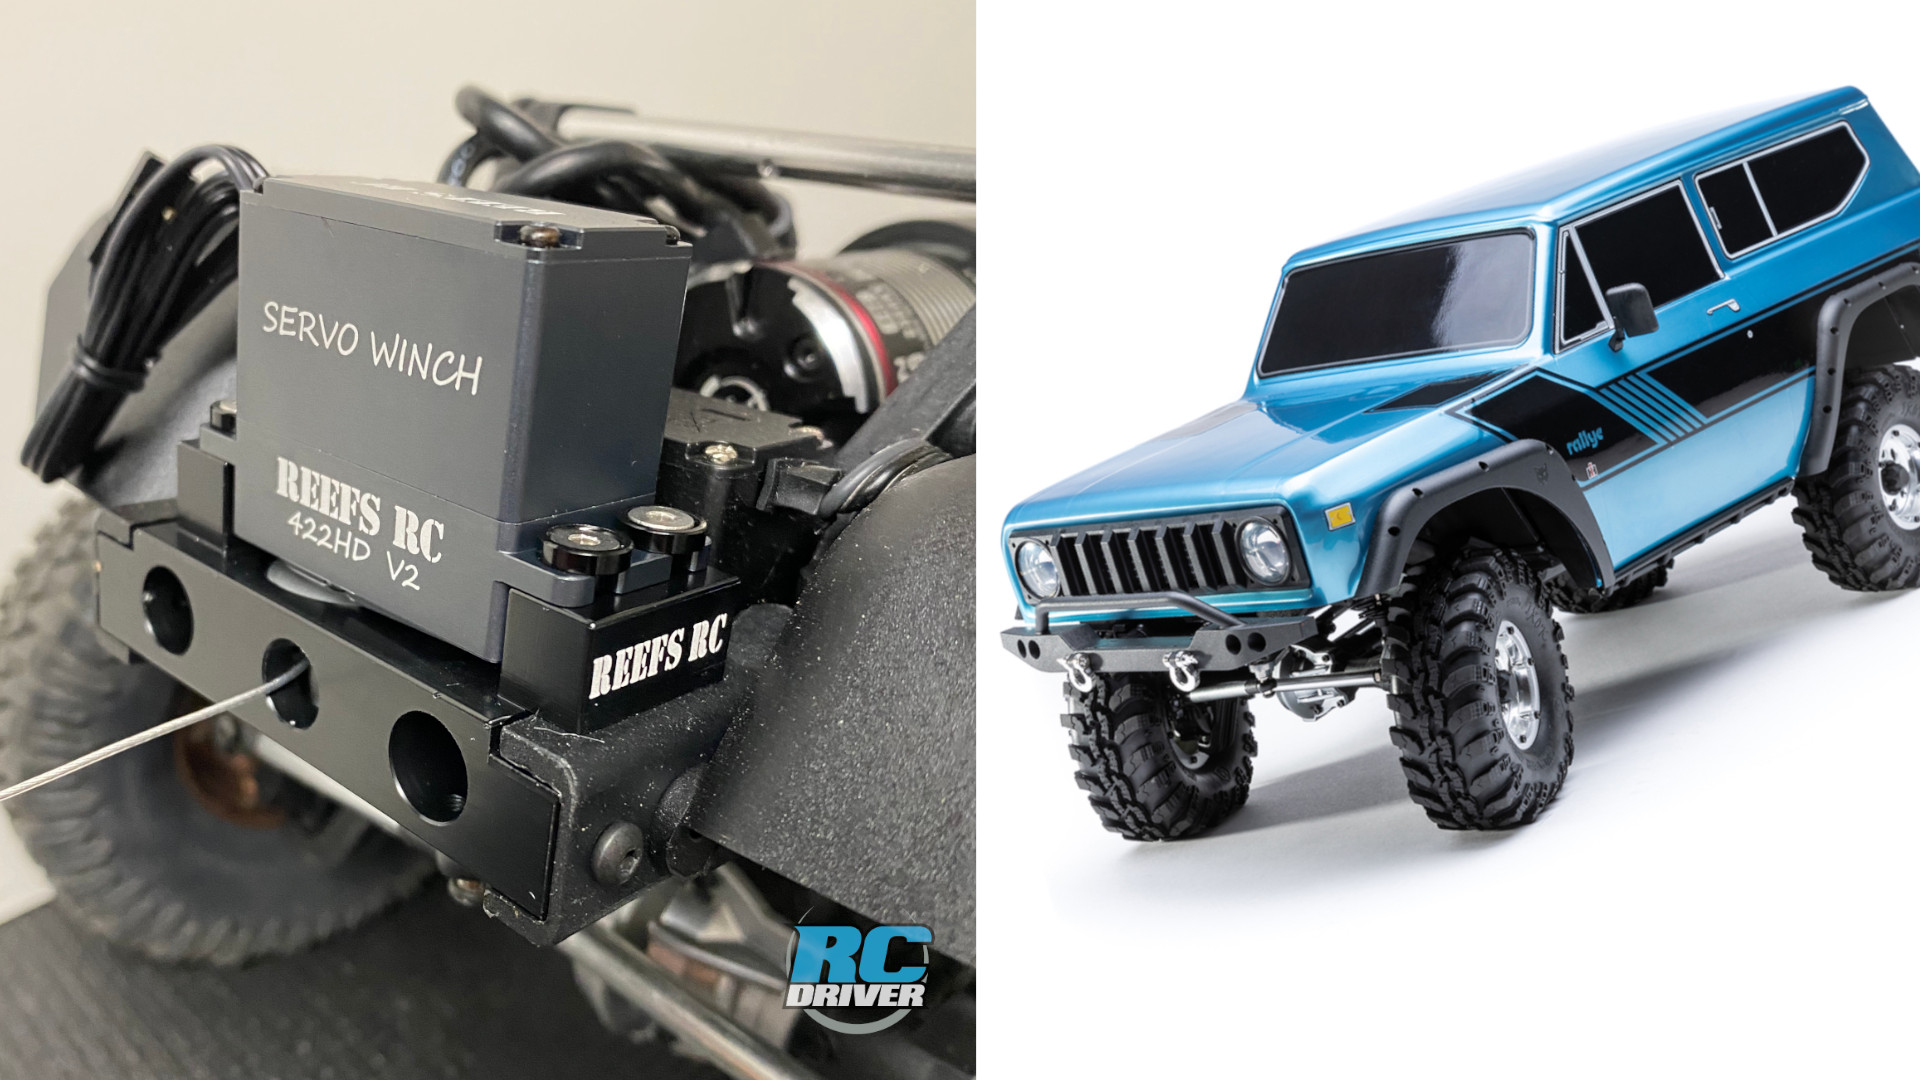 Reef's RC winch bumper mount for the Redcat Gen8 trail truck